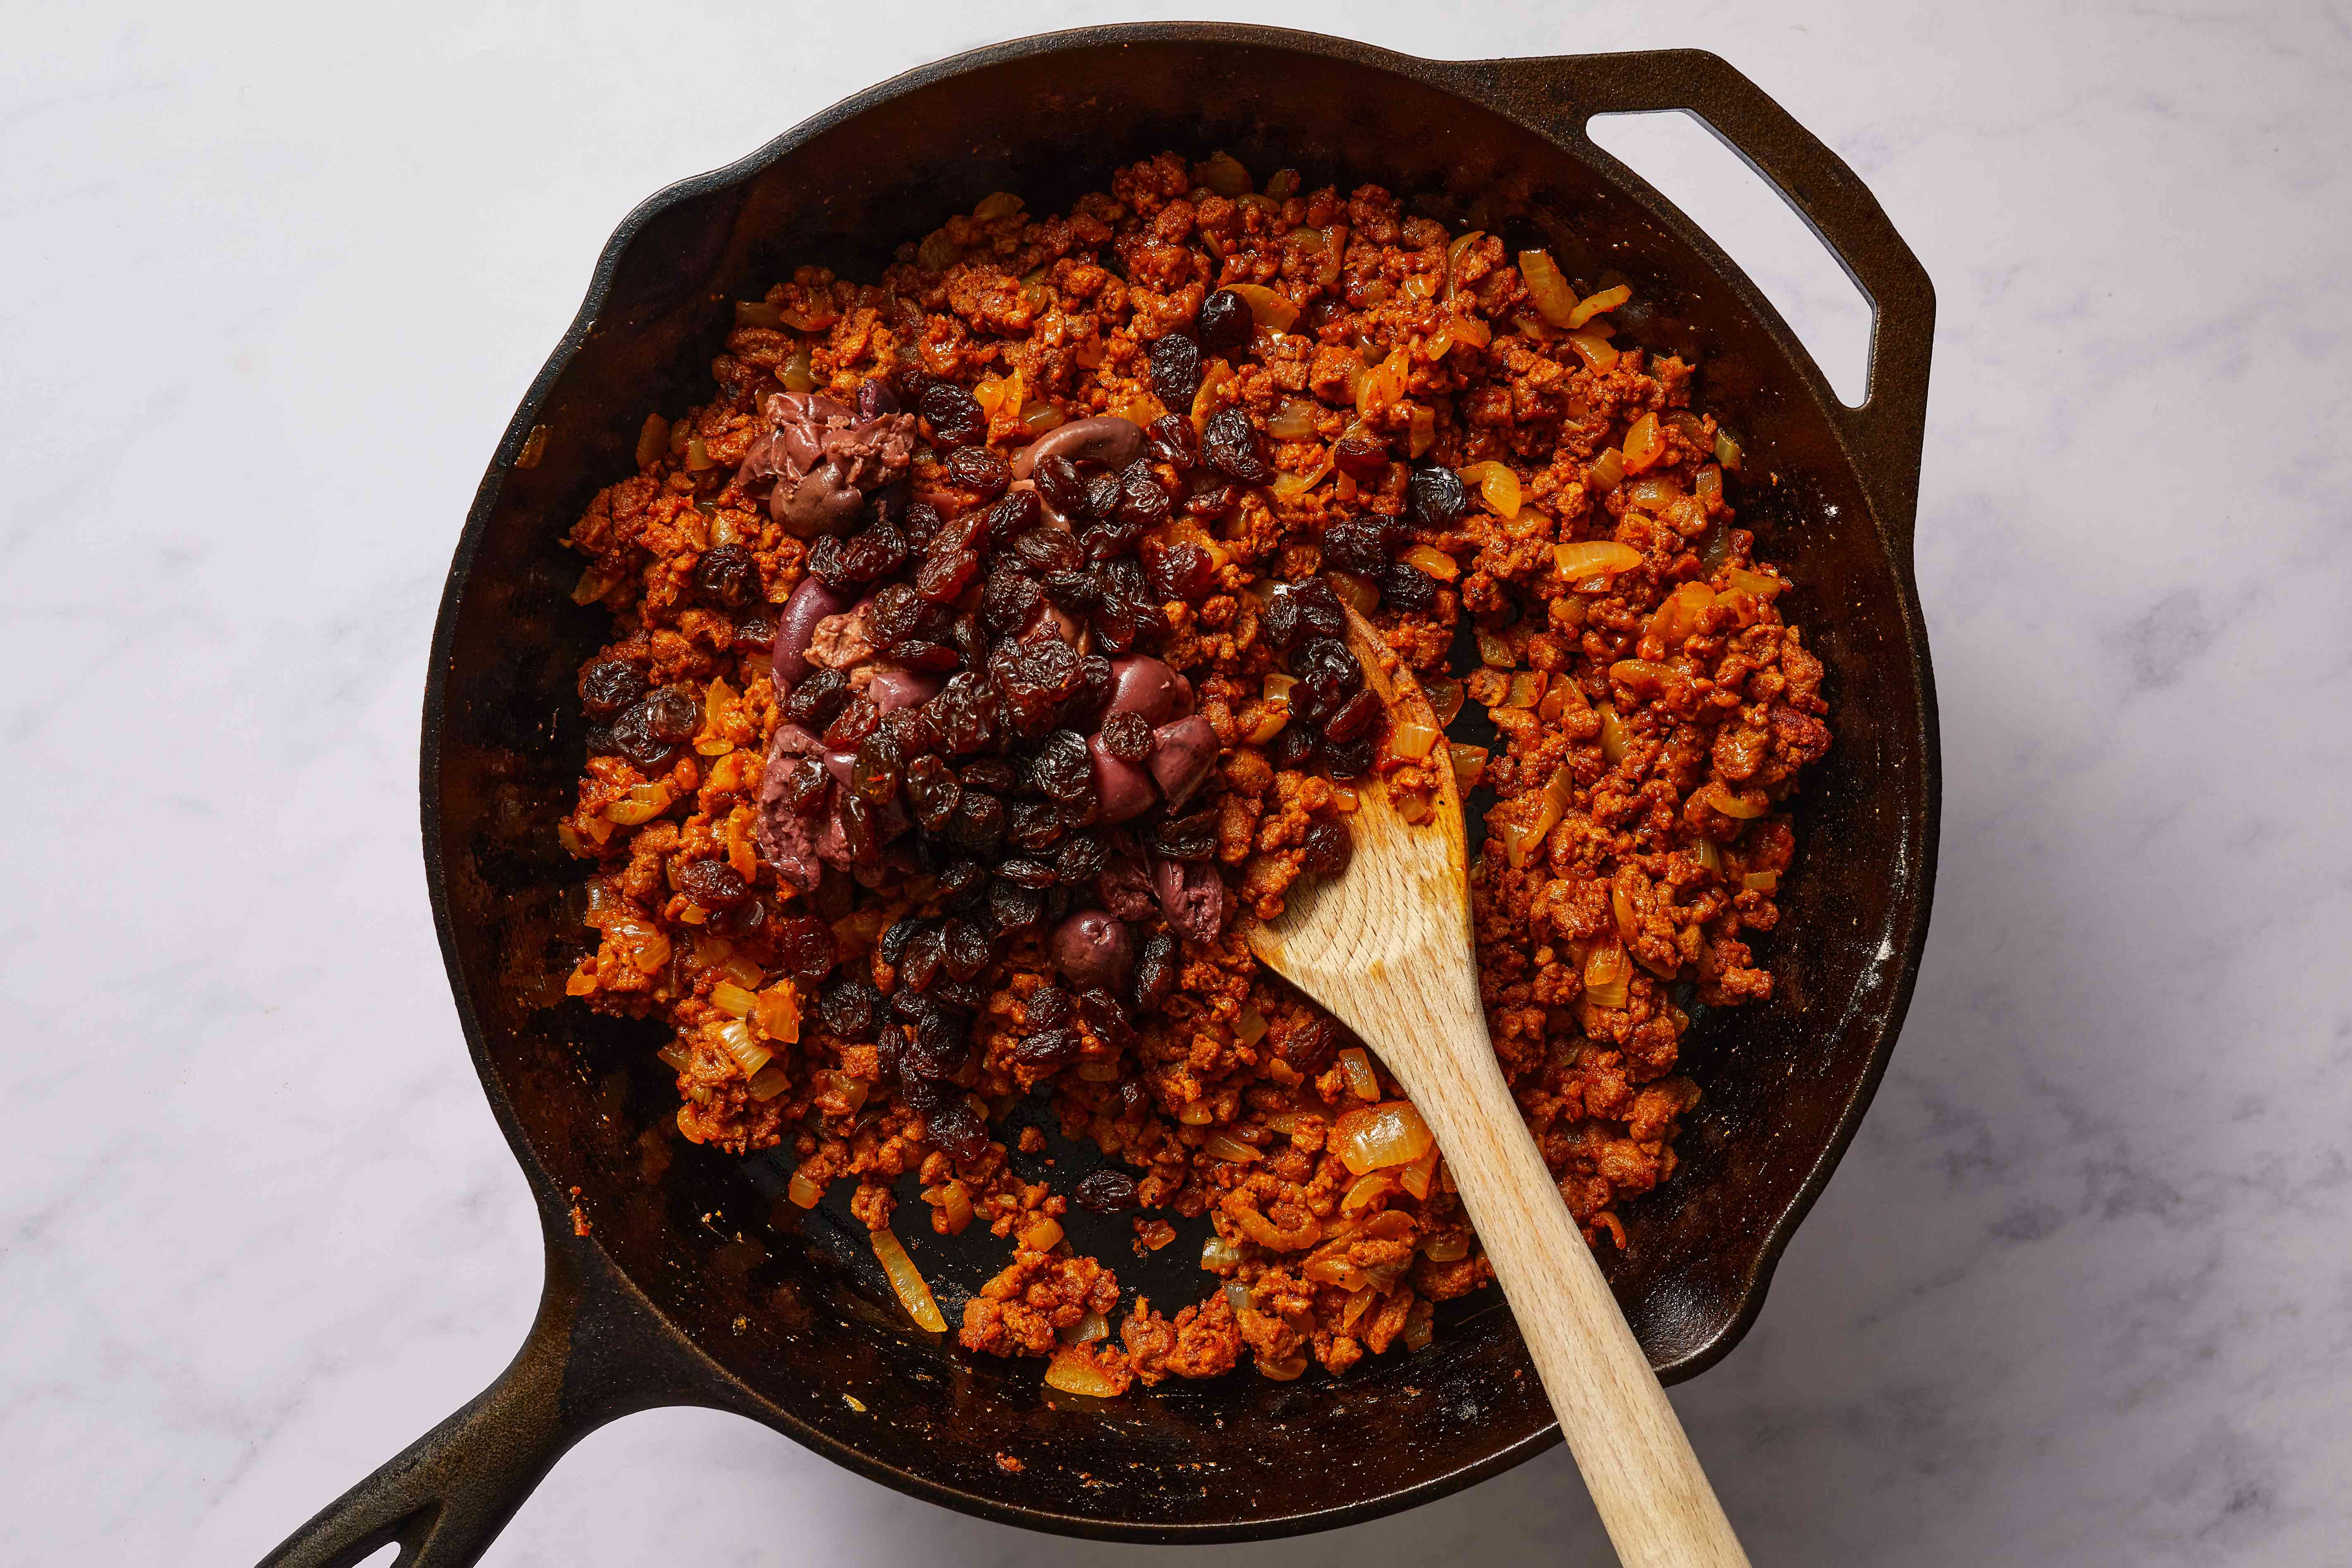 stir the raisins and black olives into the beef mixture in the skillet